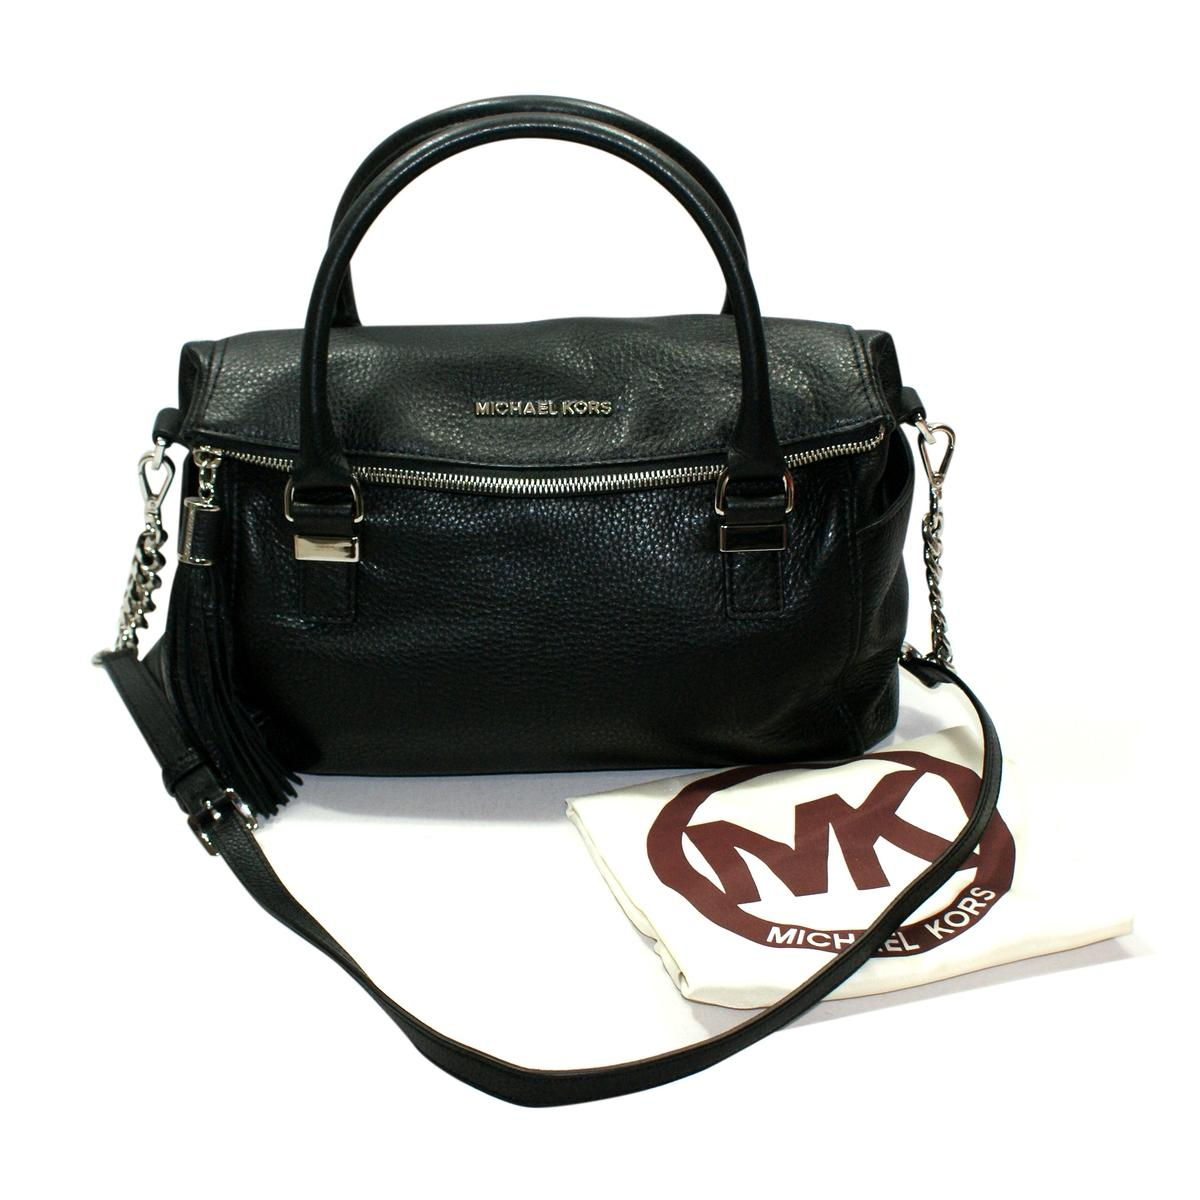 Home Michael Kors Weston Genuine Leather Medium Satchel Crossbody Bag Black Click Thumbnail To Zoom Found